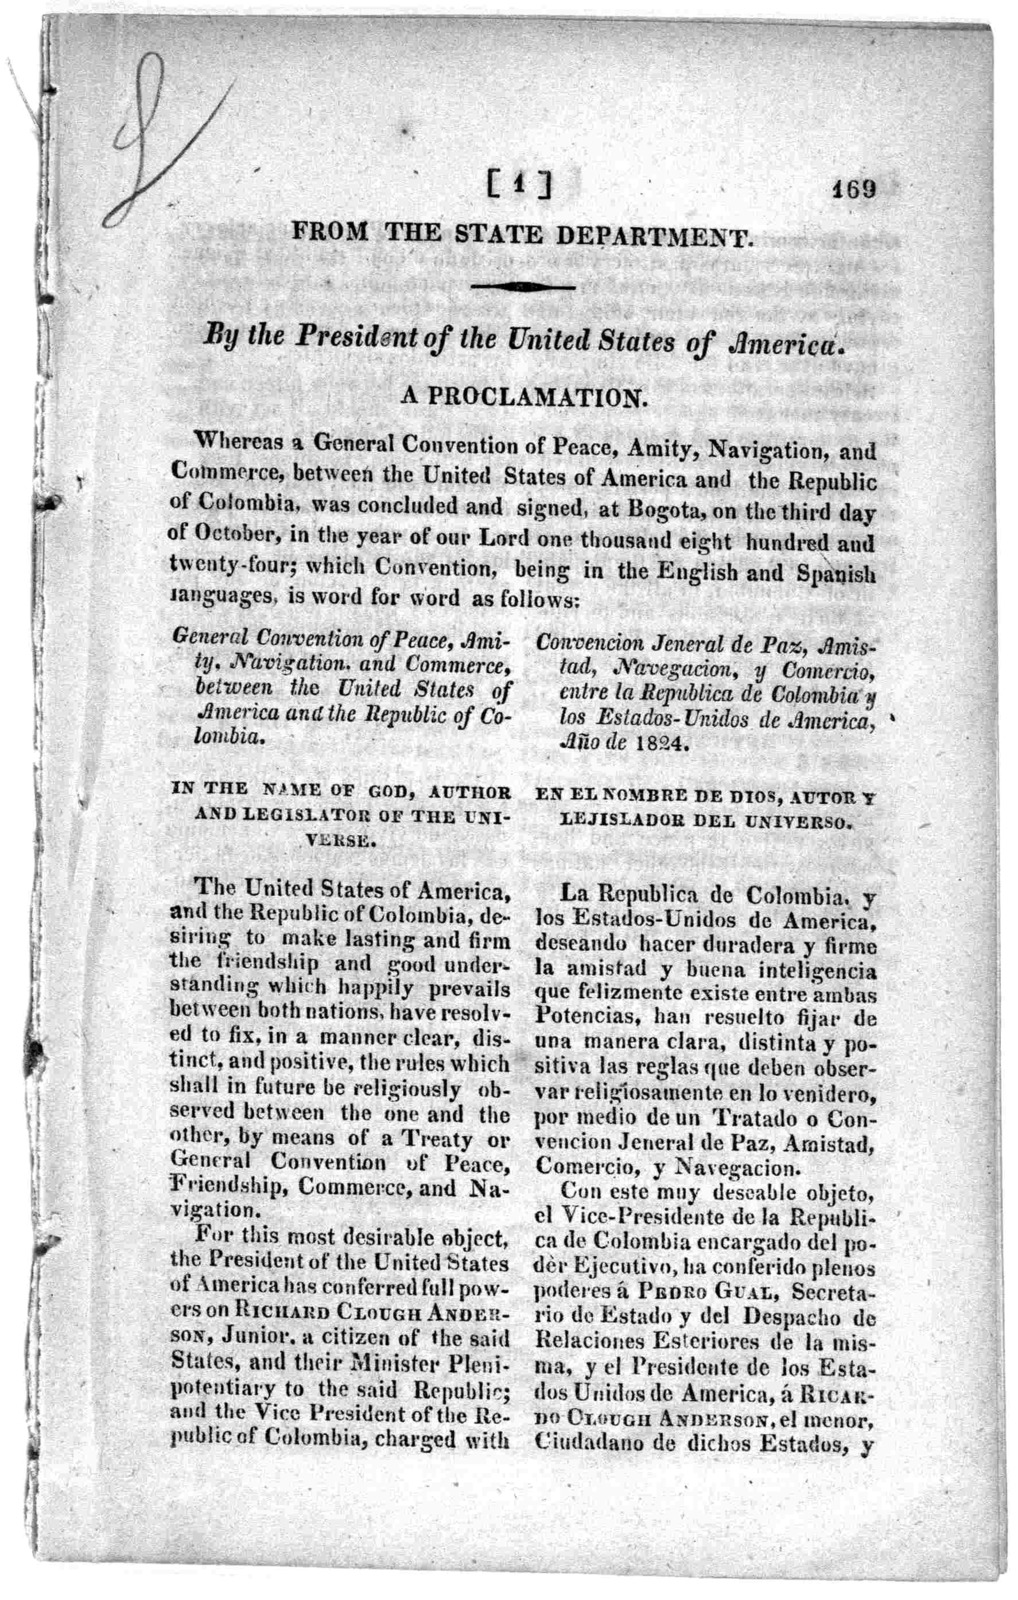 From the State department. By the President of the United States of America. A proclamation. Whereas a general convention of peace, amity, navigation,and commerce, between the United States of America and the Republic of Columbia, was concluded